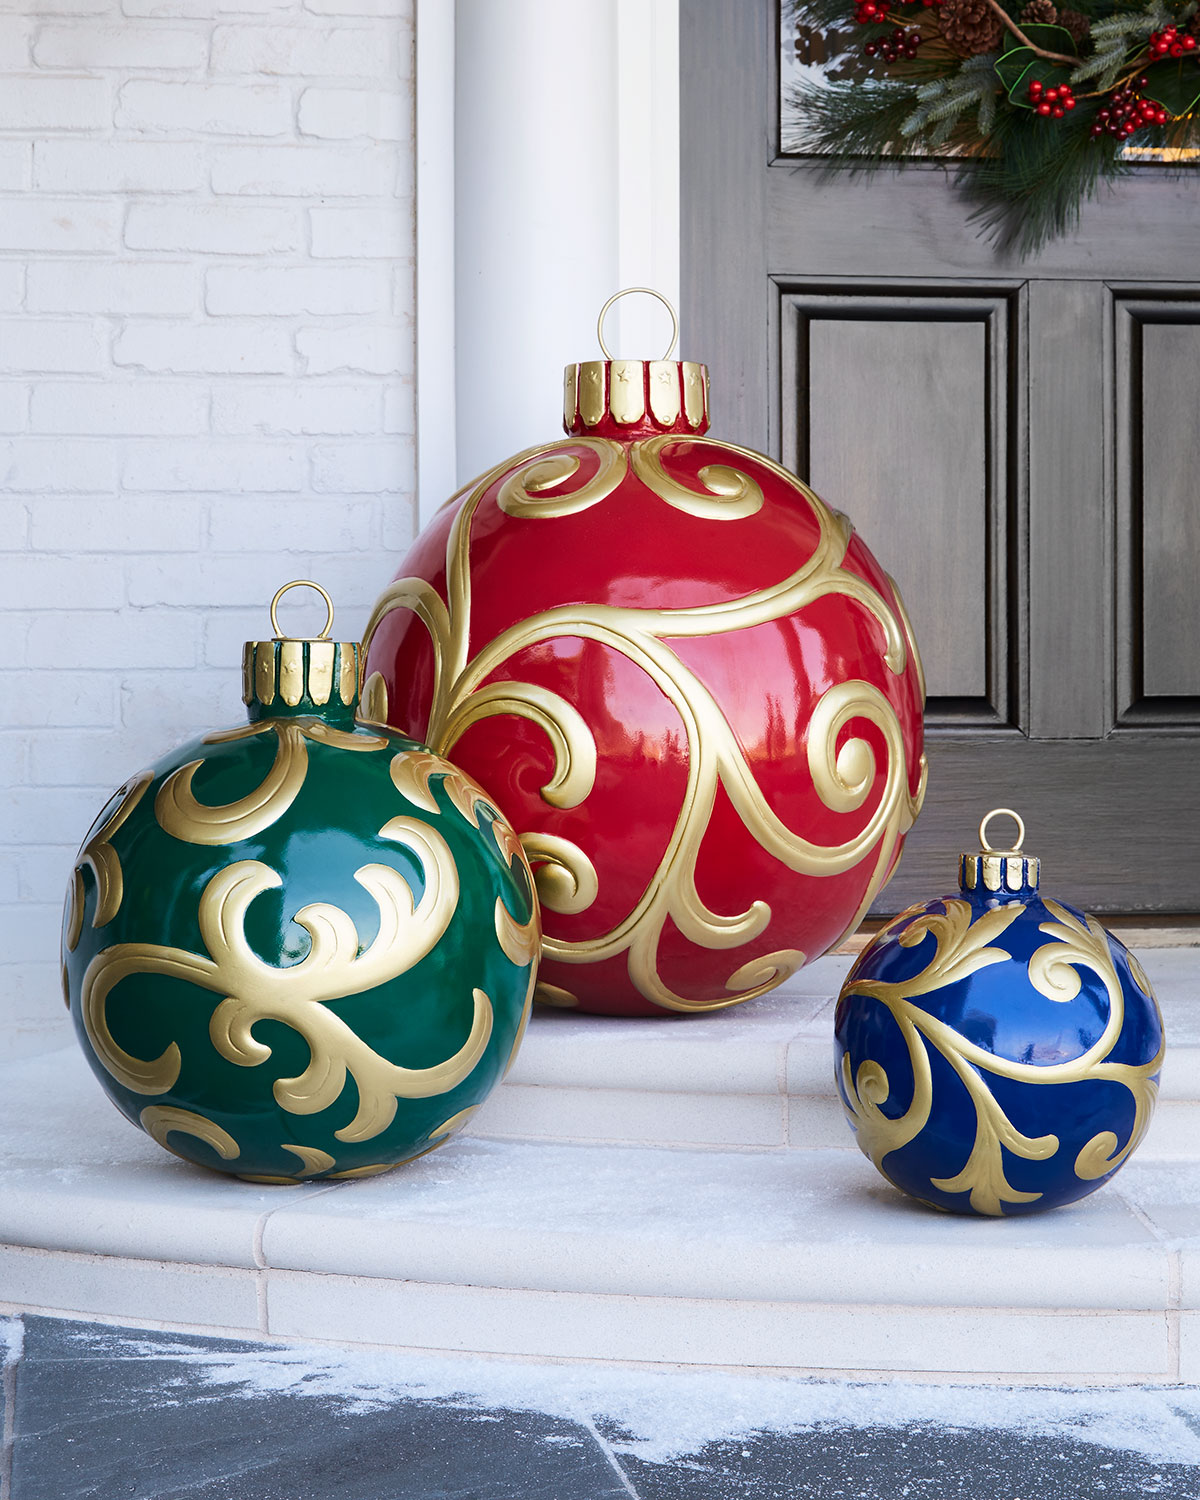 Outdoor Christmas Ornament, Small